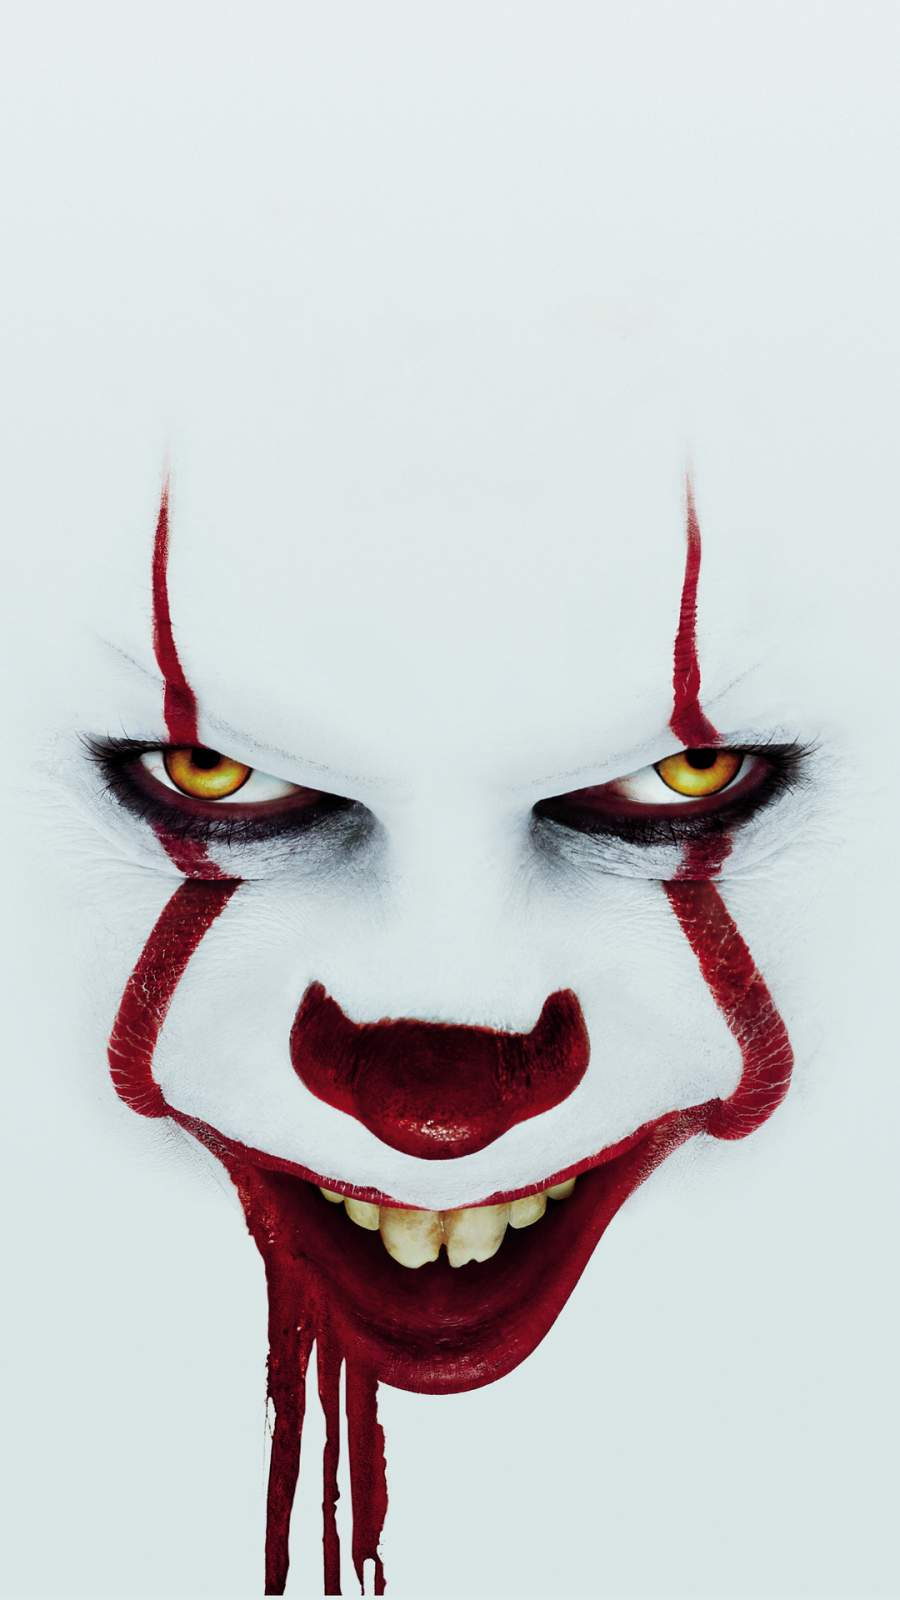 IT Chapter Two Joker iPhone Wallpaper